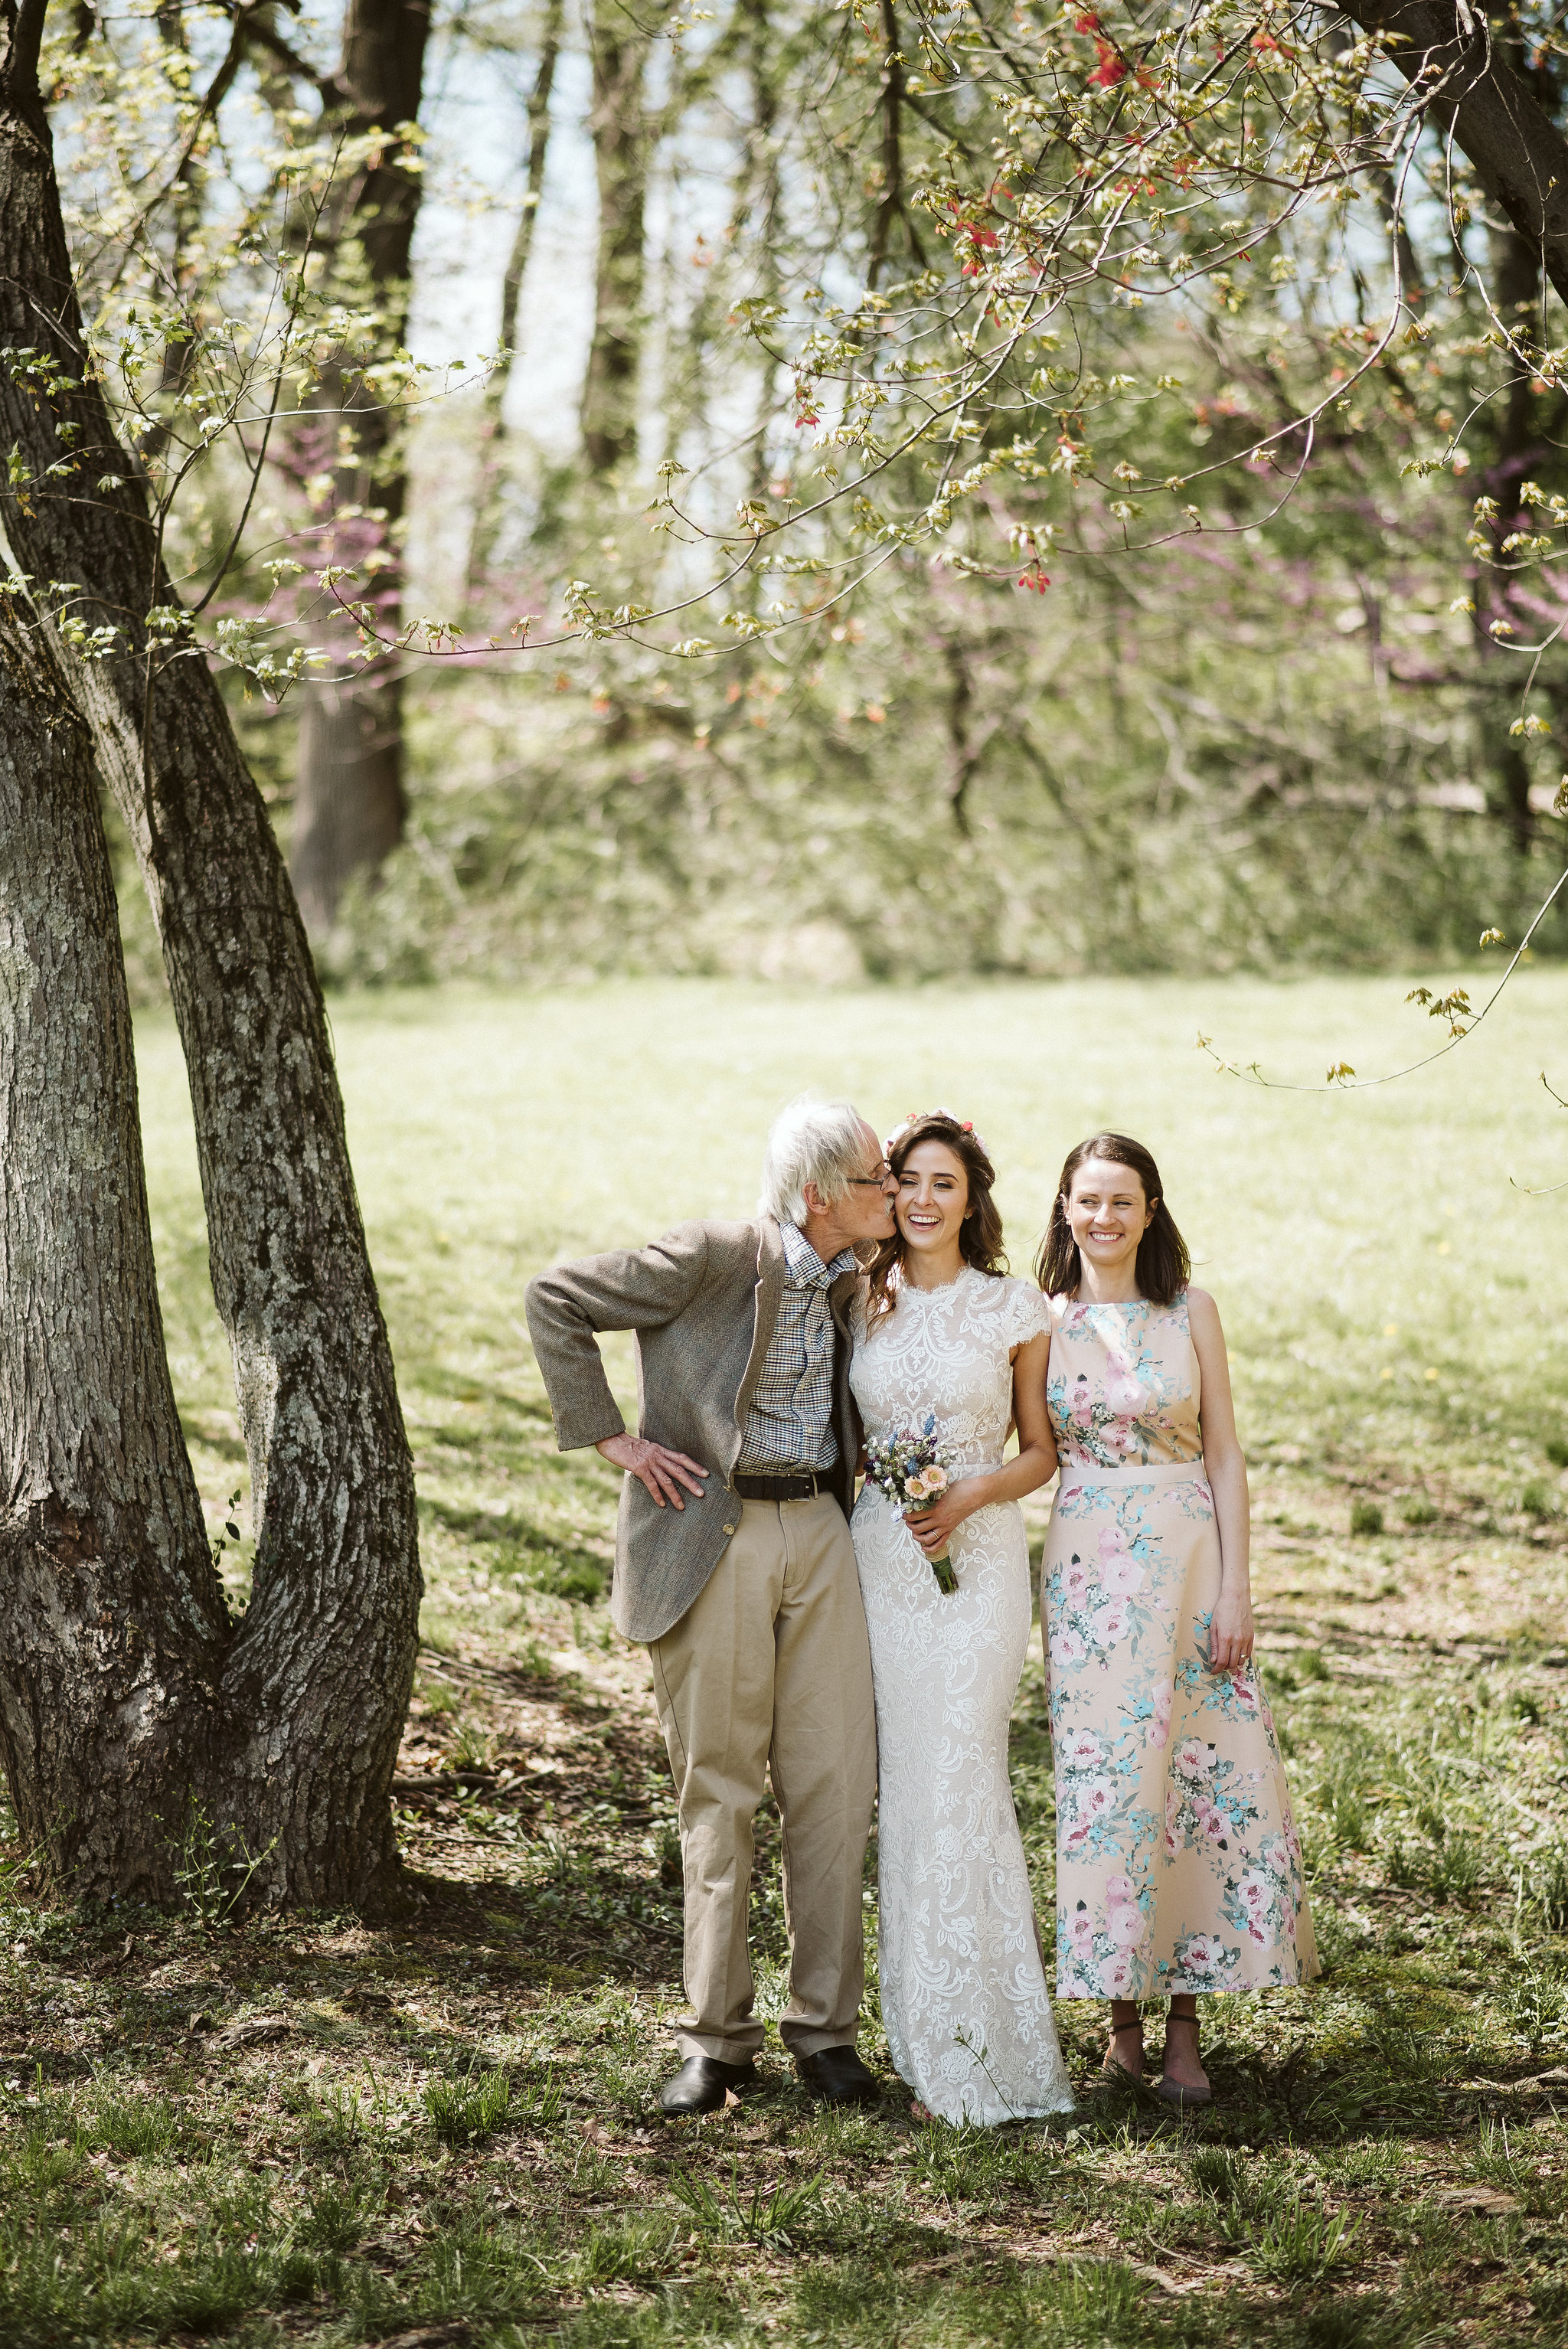 Spring Outdoor Wedding, Park, Baltimore Wedding Photographer, DIY, Classic, Upcycled, Garden Party, Romantic, Portrait of Bride with Family, BHLDN Wedding Dress